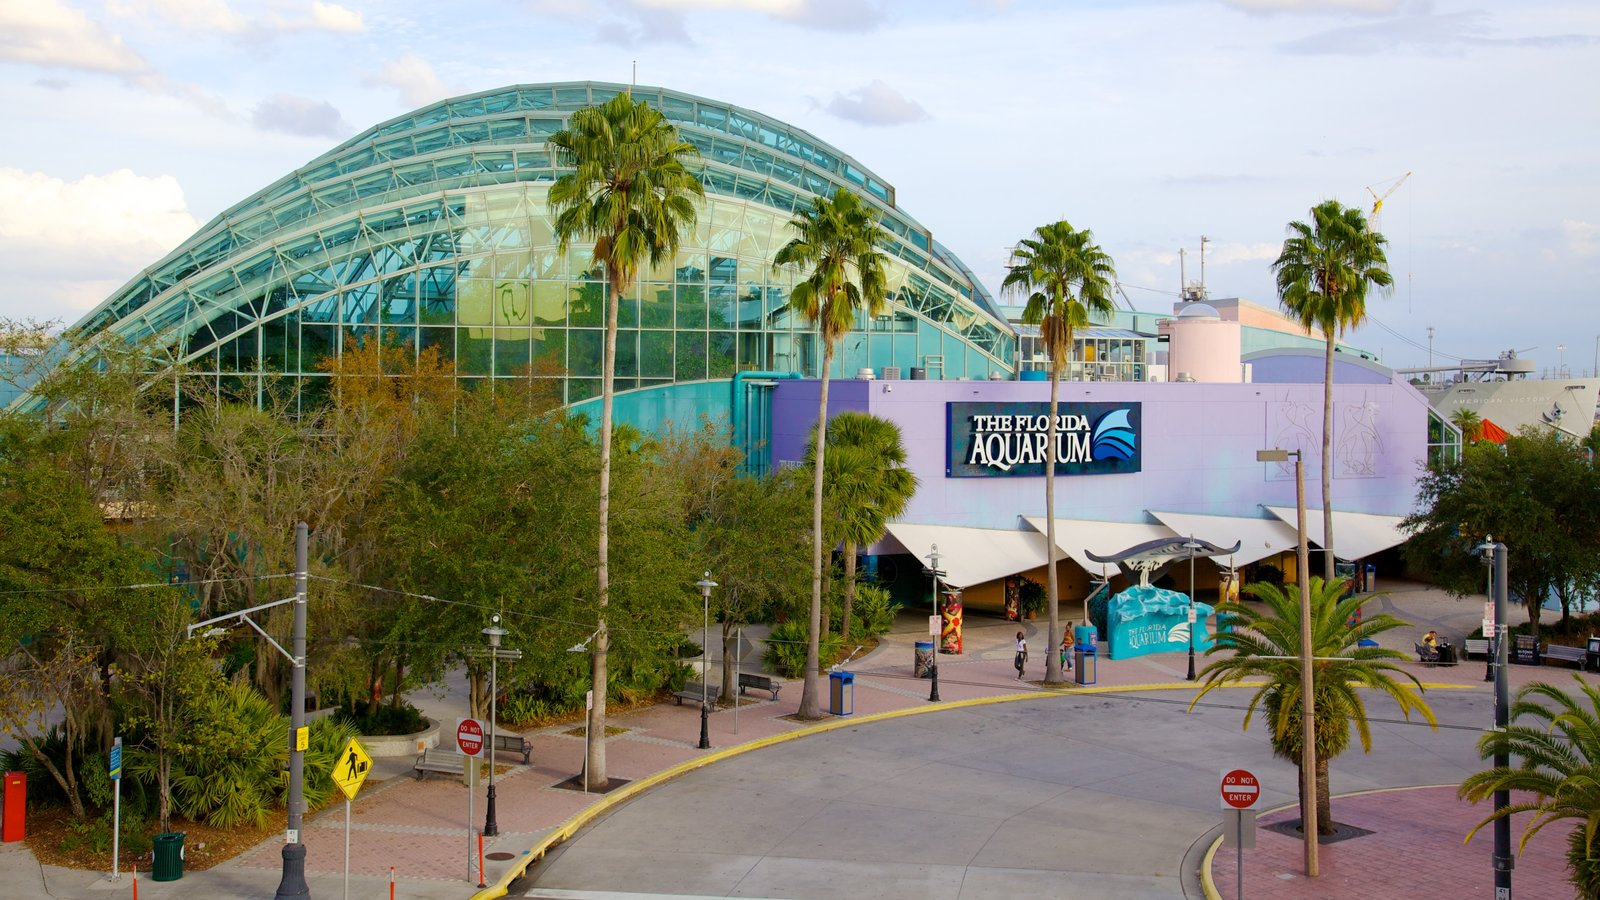 Florida Aquarium which includes marine life and modern architecture